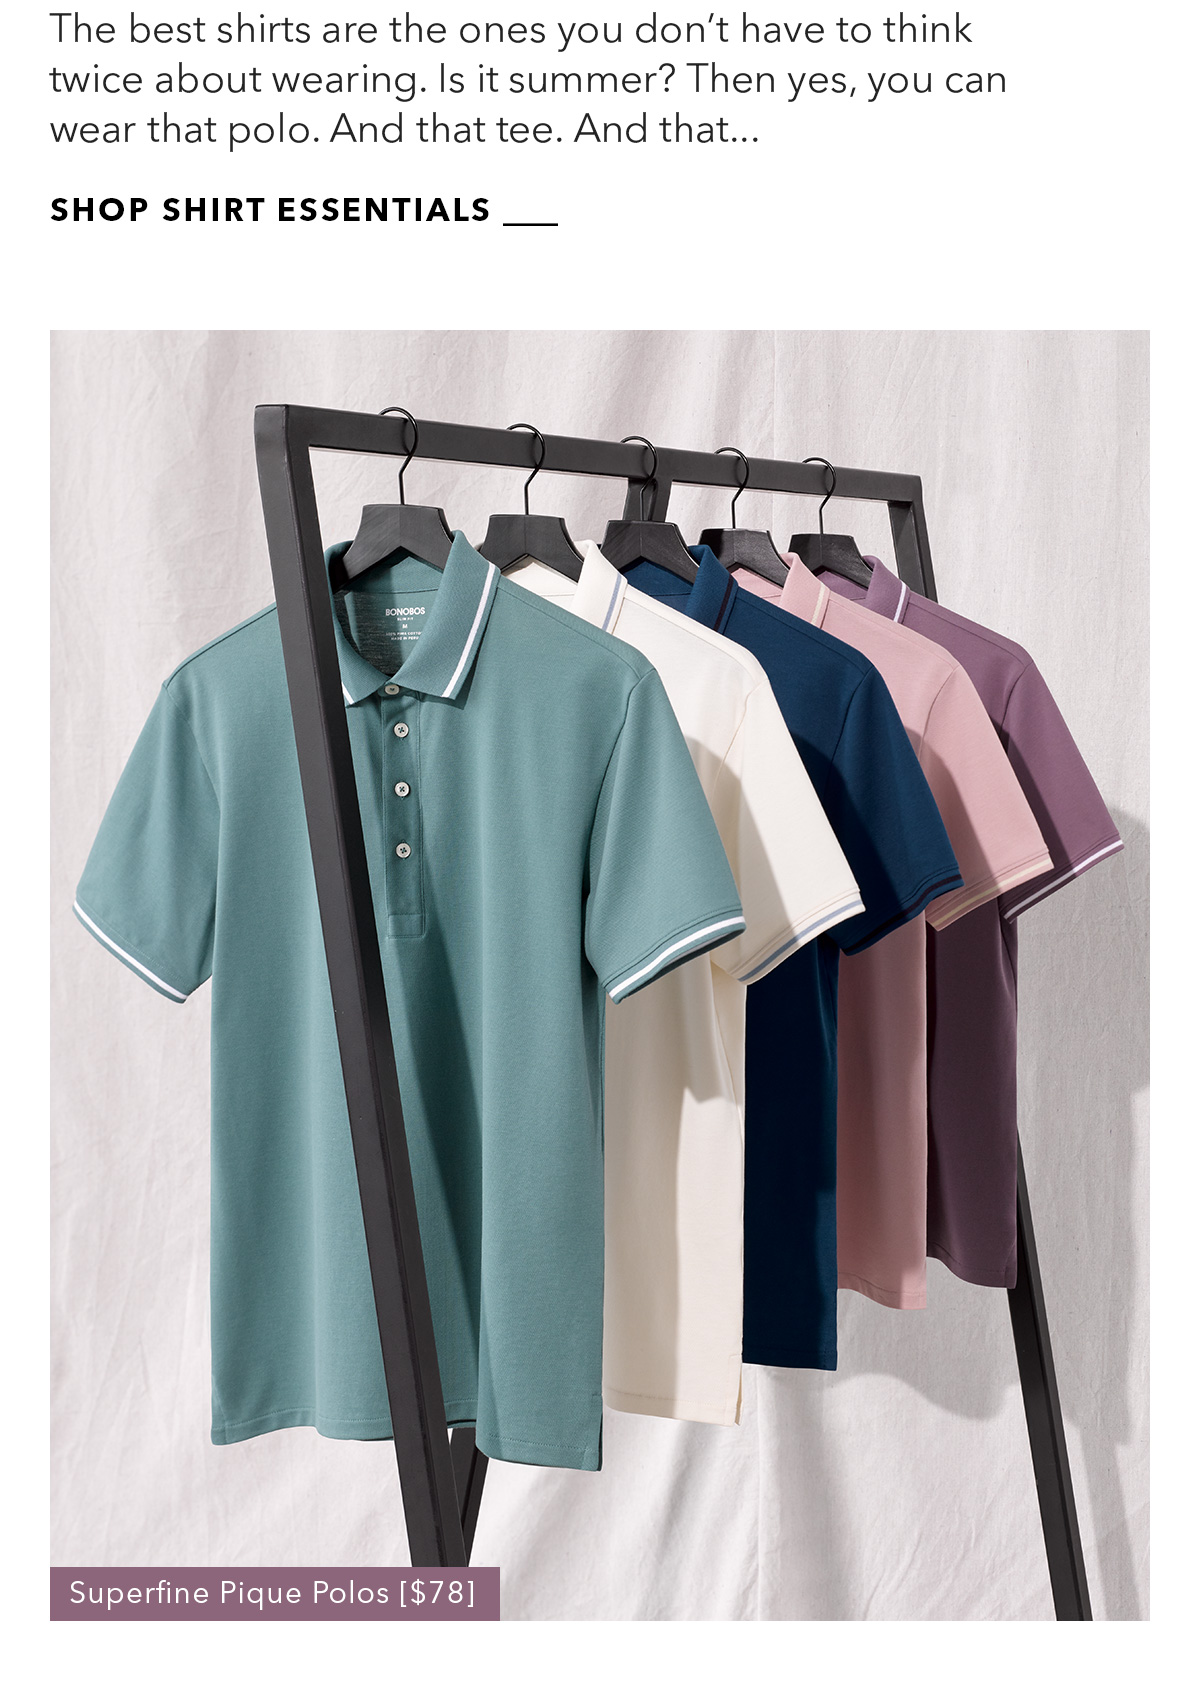 The best shirts are the ones you don't have to think twice about wearing. Is it summer? Then yes, you can wear that polo. And that tee. And that...  SHOP SHIRT ESSENTIALS